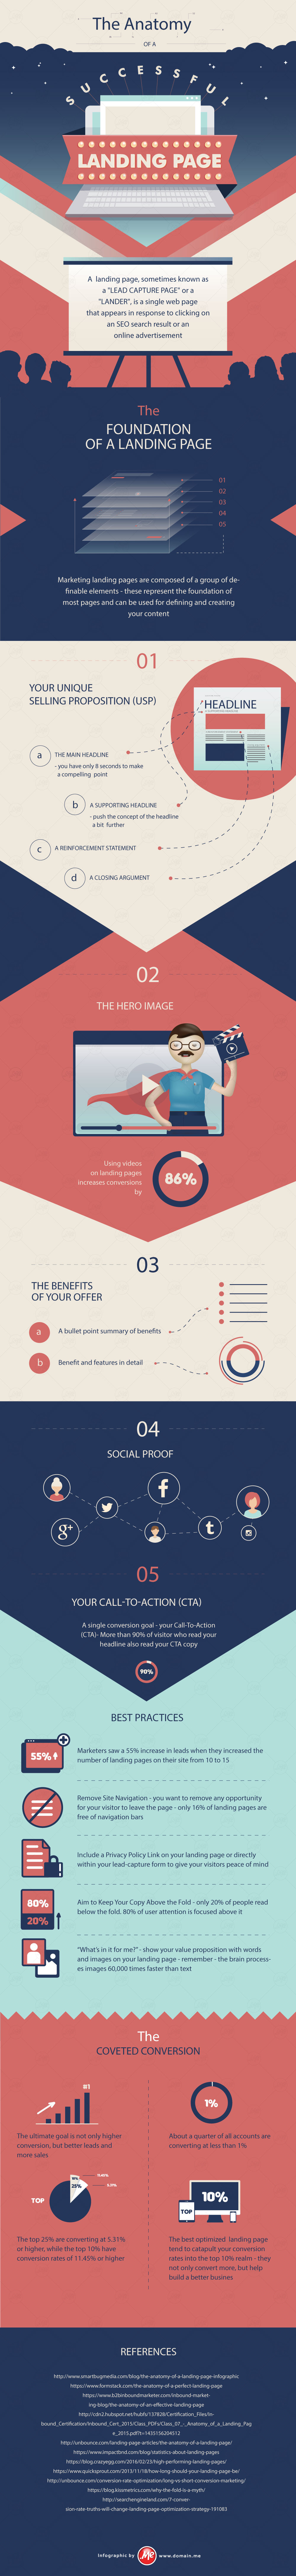 INFOGRAPHIC: The Anatomy of a Successful Landing Page